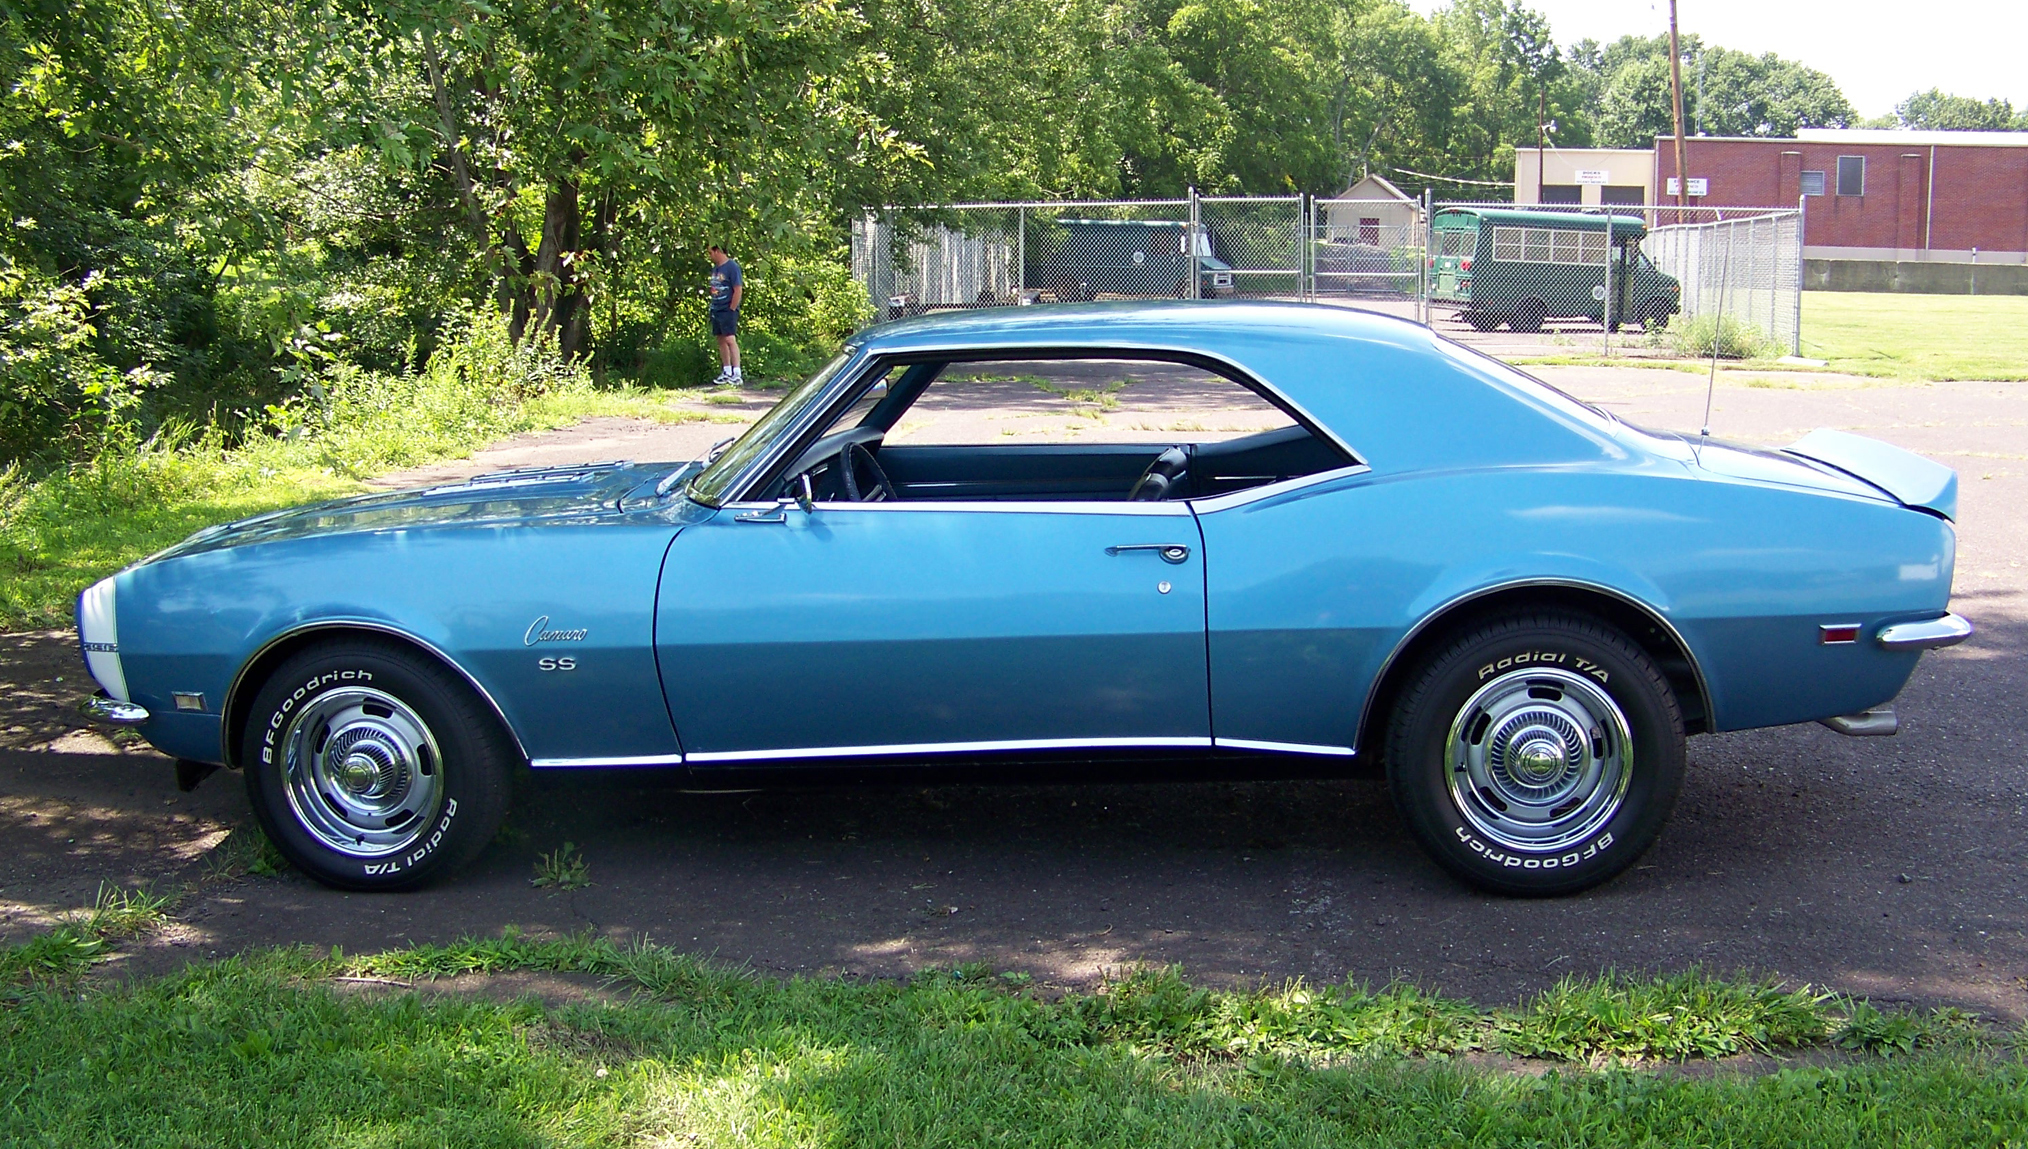 1968 Camaro Ss Muscle Car Has Needed Lots Of Restoration